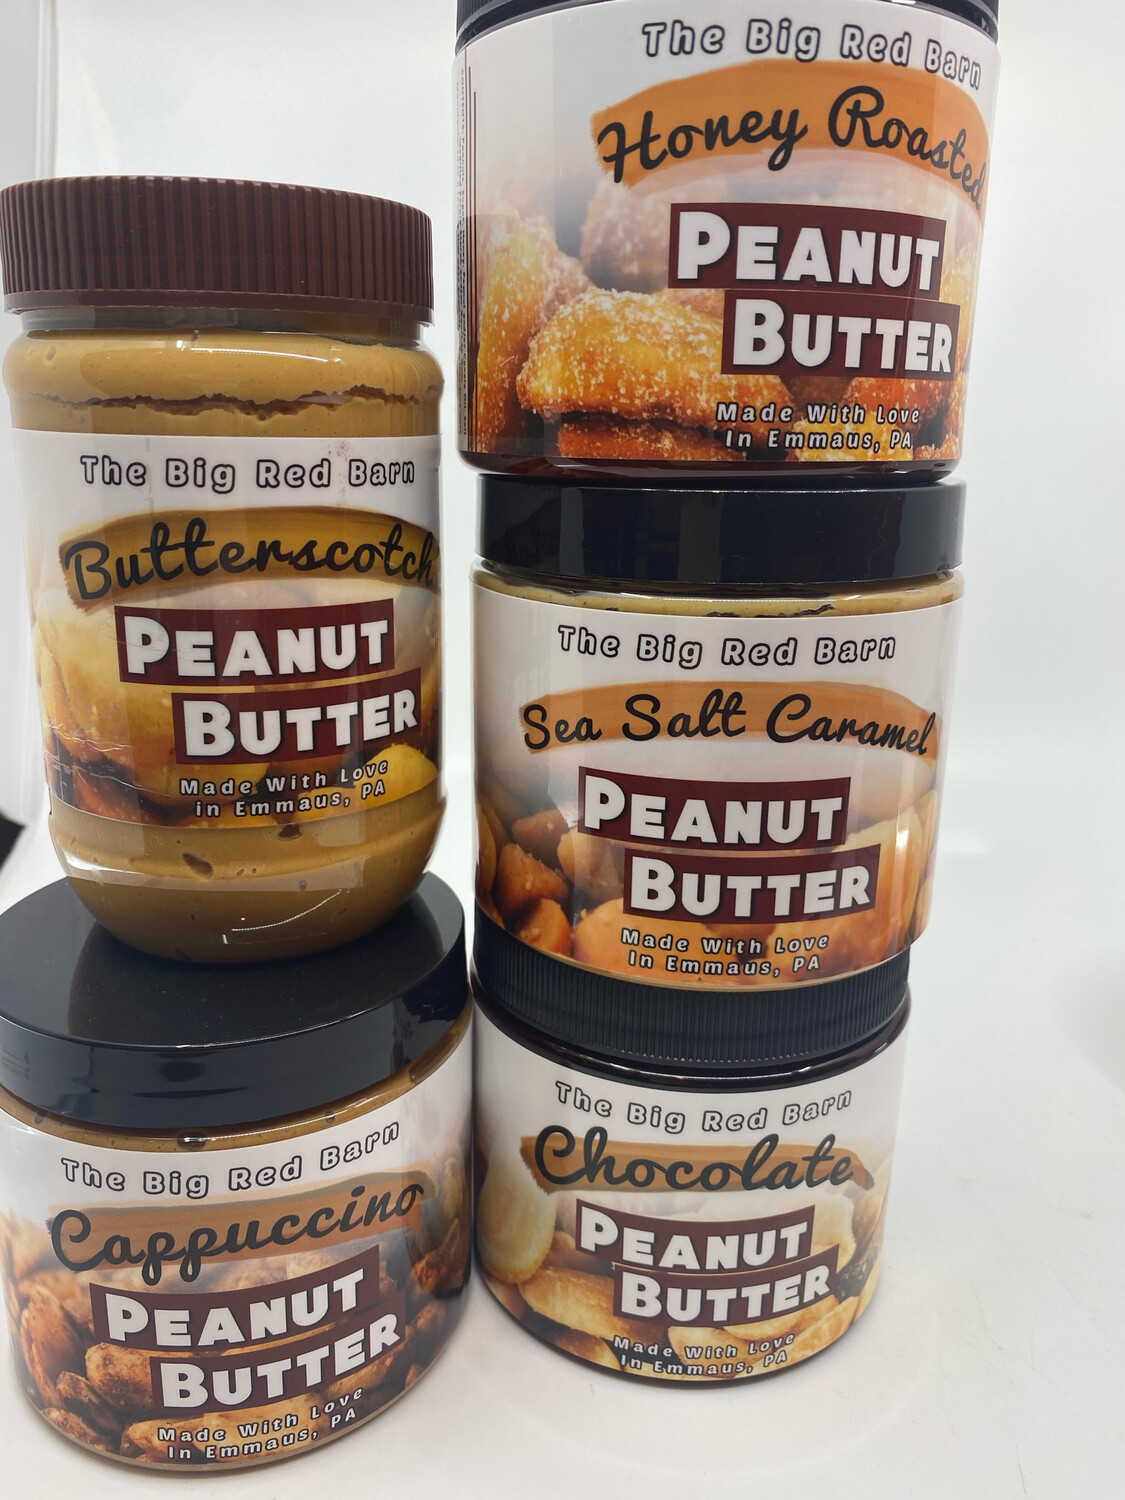 Big Red Barn flavored peanut butter PP